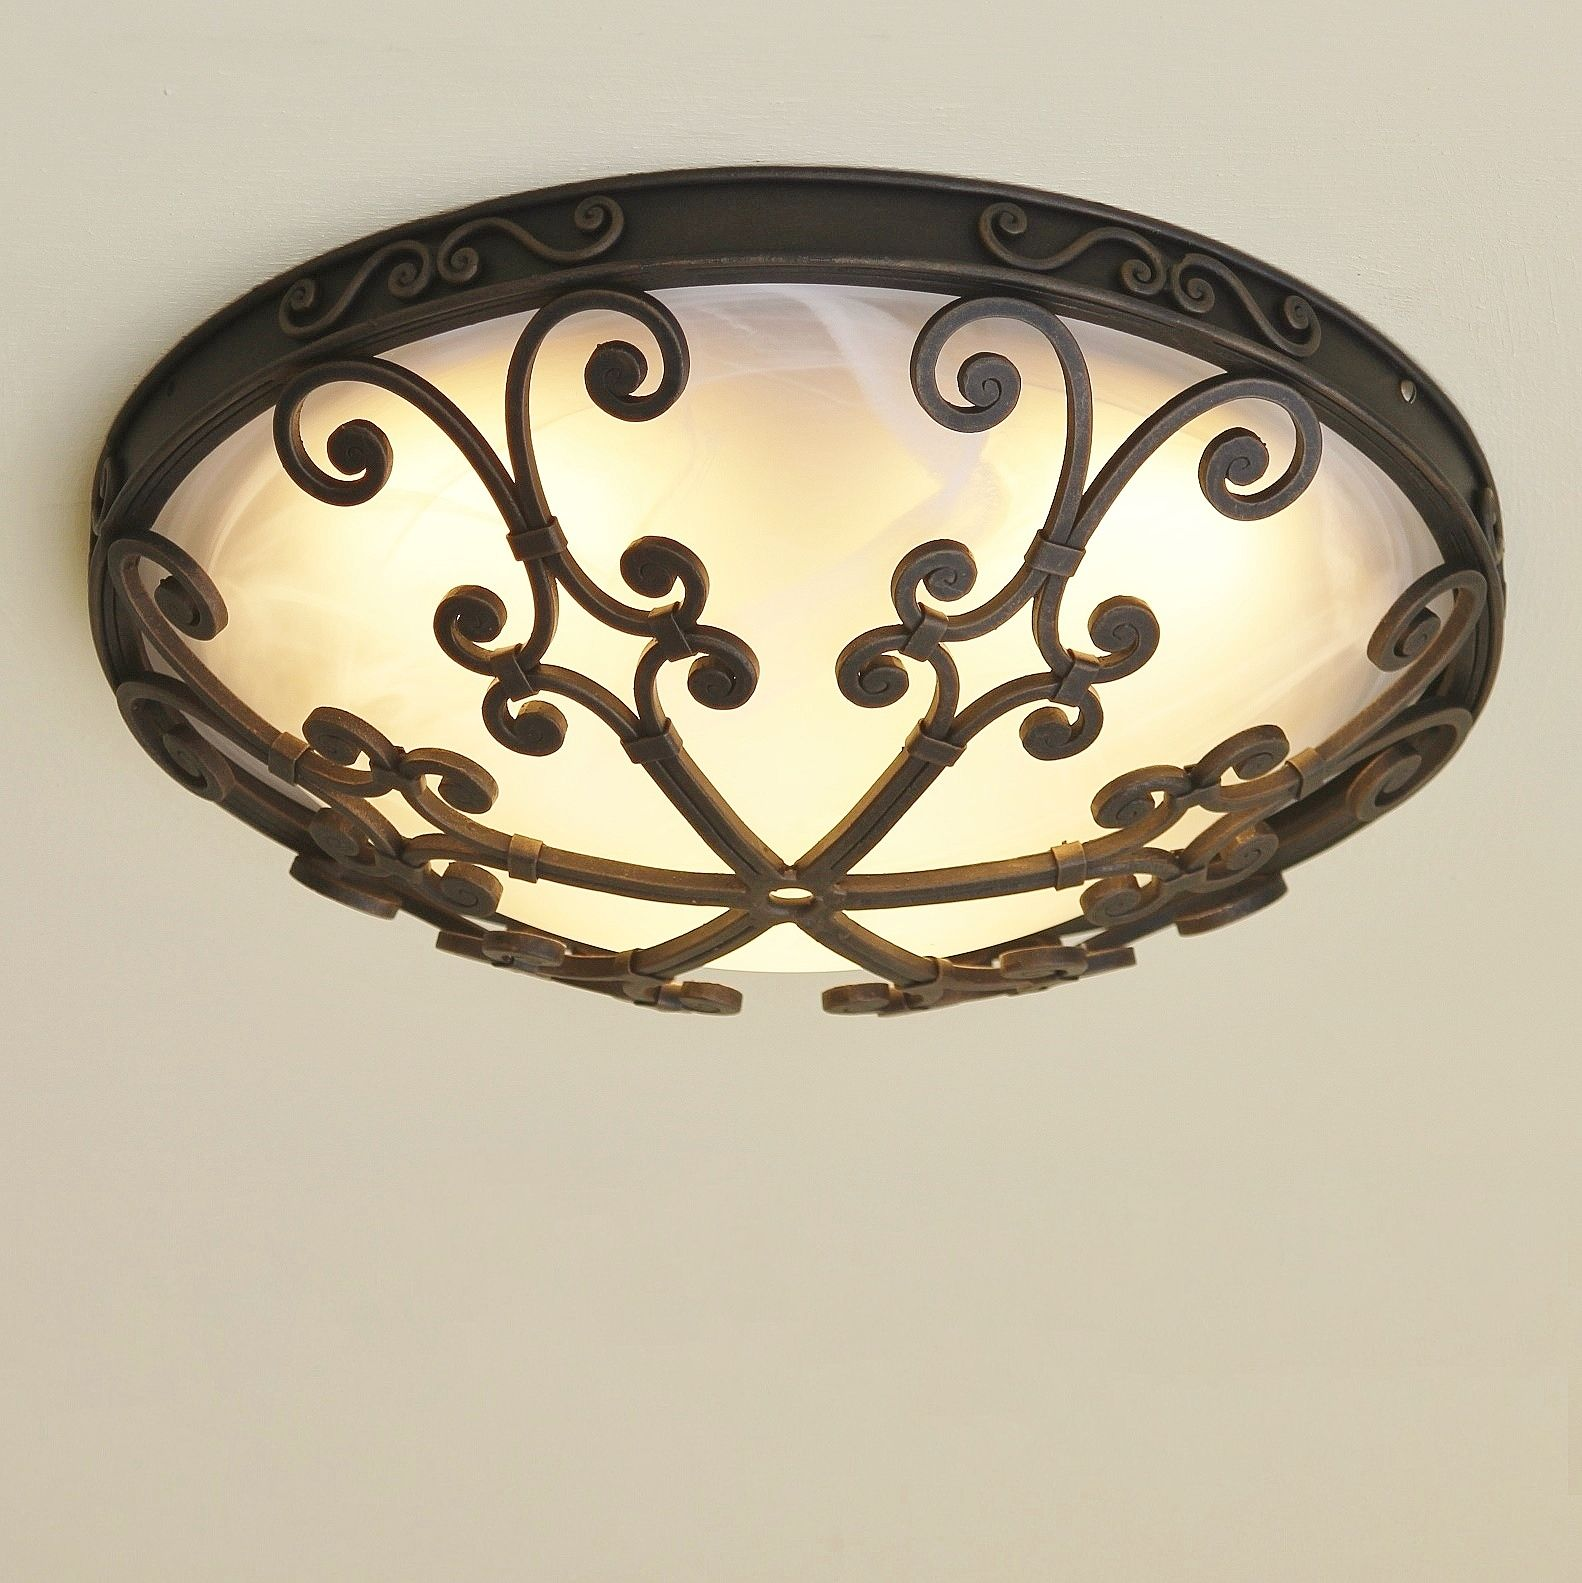 Lights Of Tuscany 6551 3 Spanish Style Flush Mount Ceiling Fixture